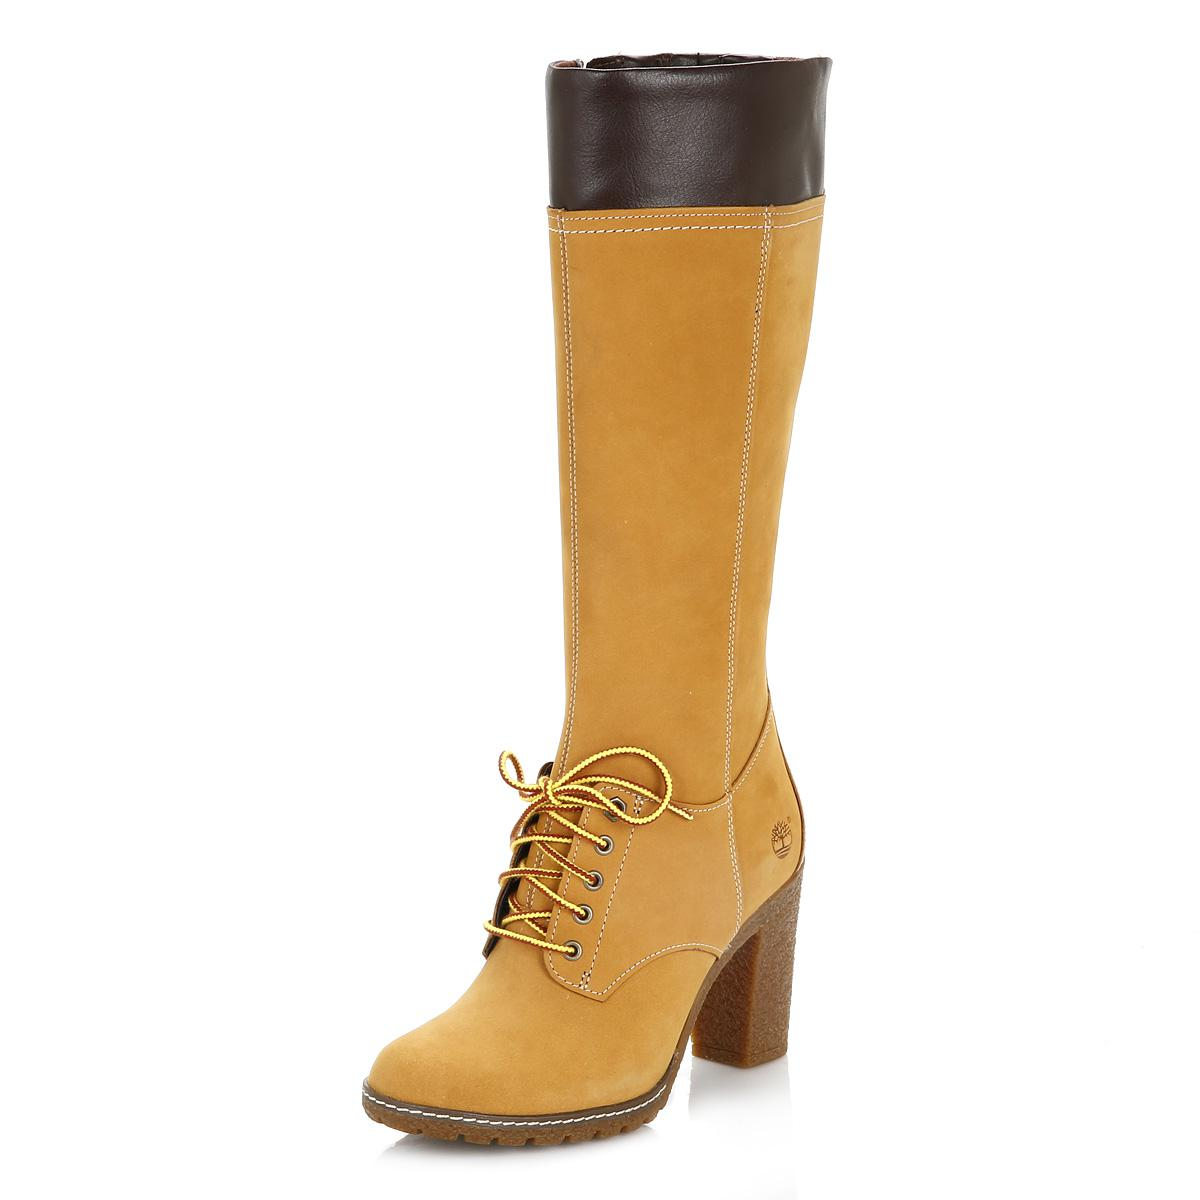 3720fc372d794 Timberland Womens Wheat Glancy Tall Lace With Zip Boots - Lyst